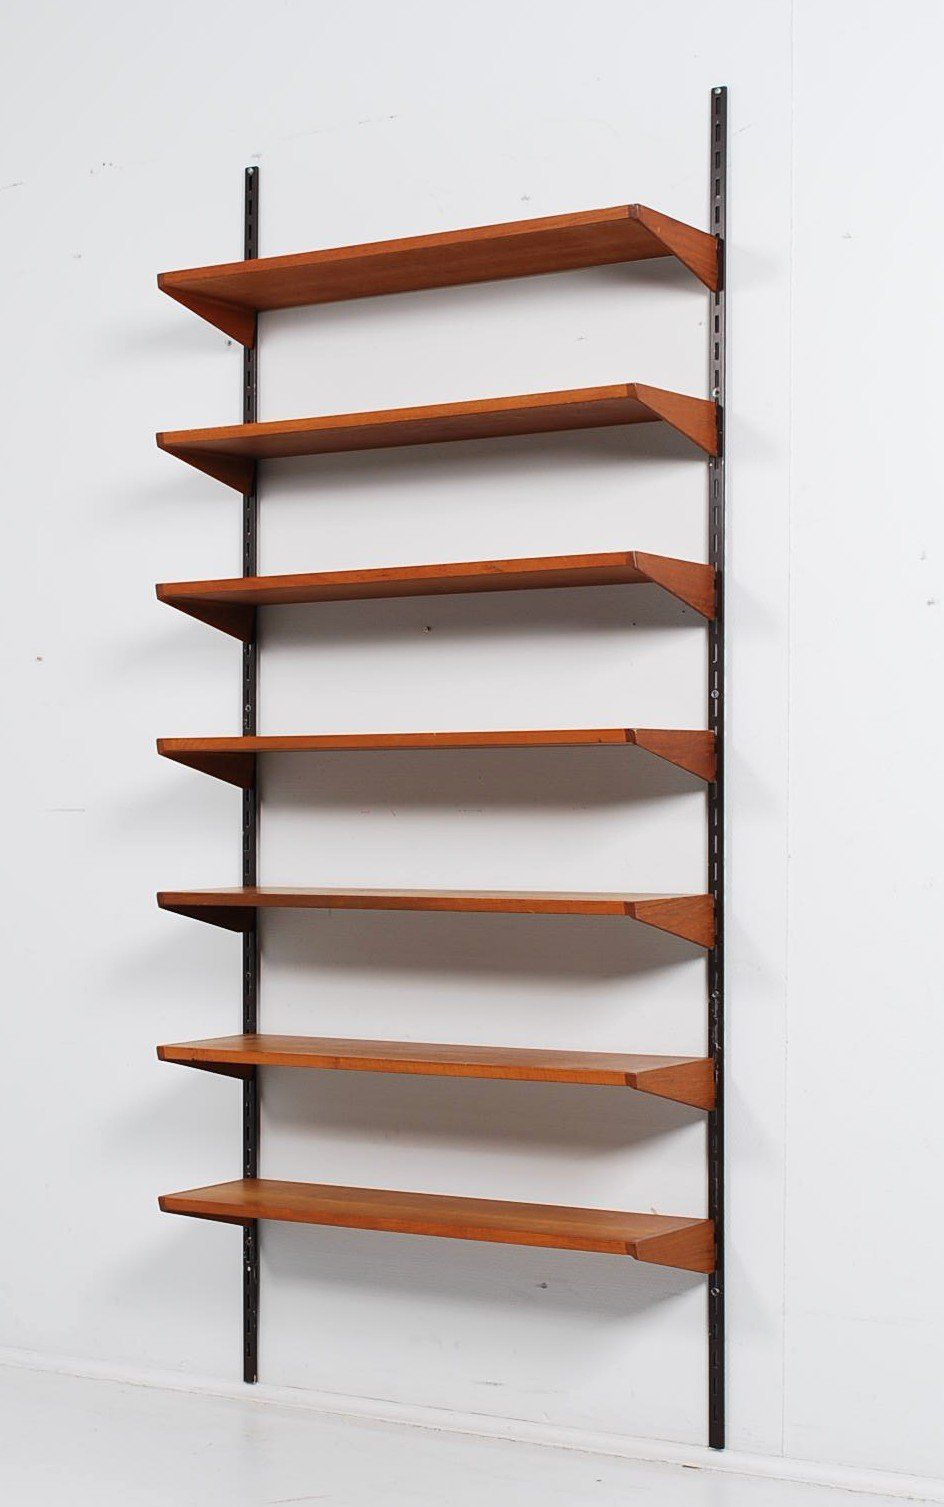 Kai Kristiansen: FM Reolsystem. Wall Shelving ... - Kai Kristiansen: FM Reolsystem Best Diy Wood Wall, Diy Wood And